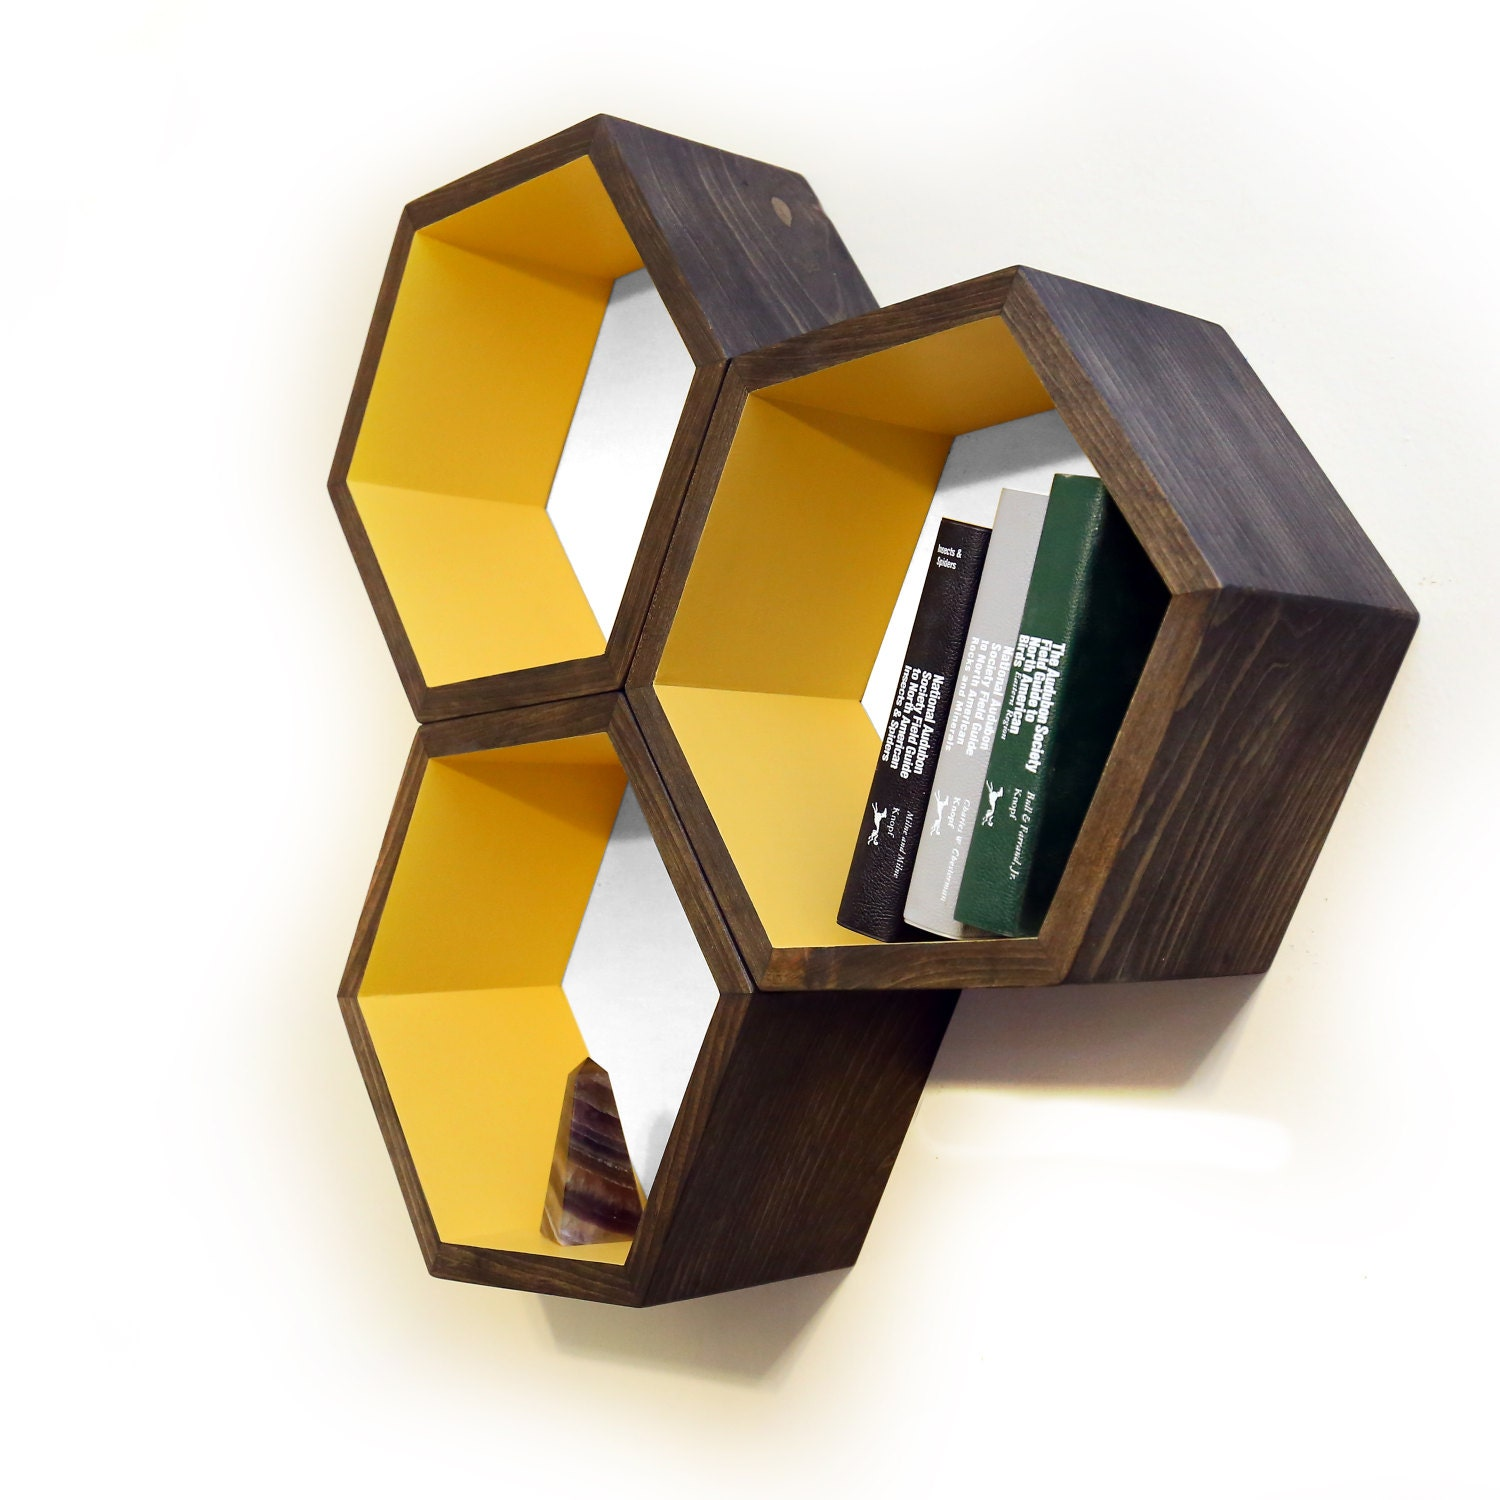 ^ Honeycomb Shelves Wooden Book Shelf Mid entury Modern tsy